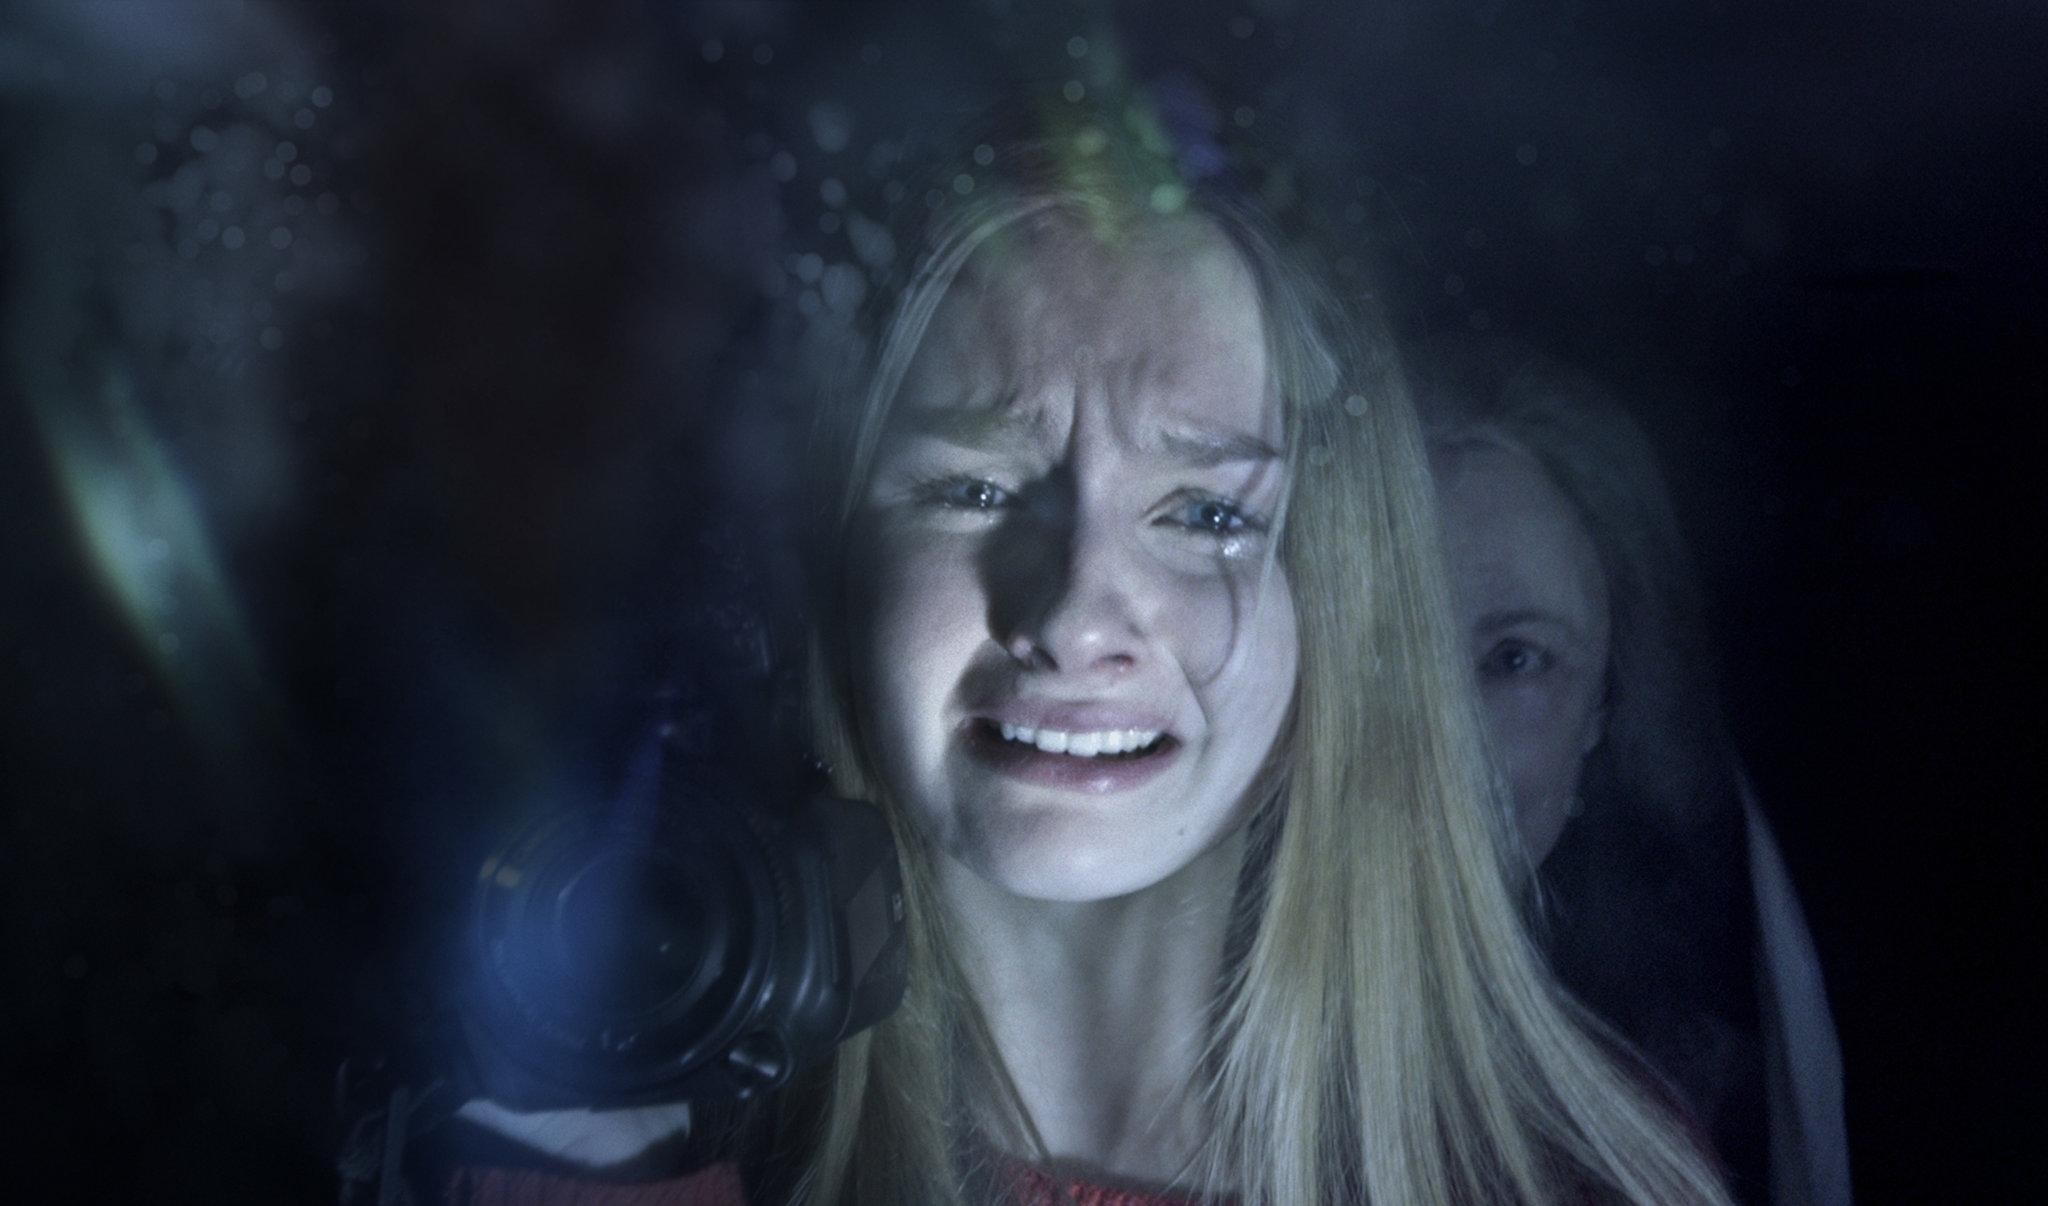 Film Review: 'The Visit'